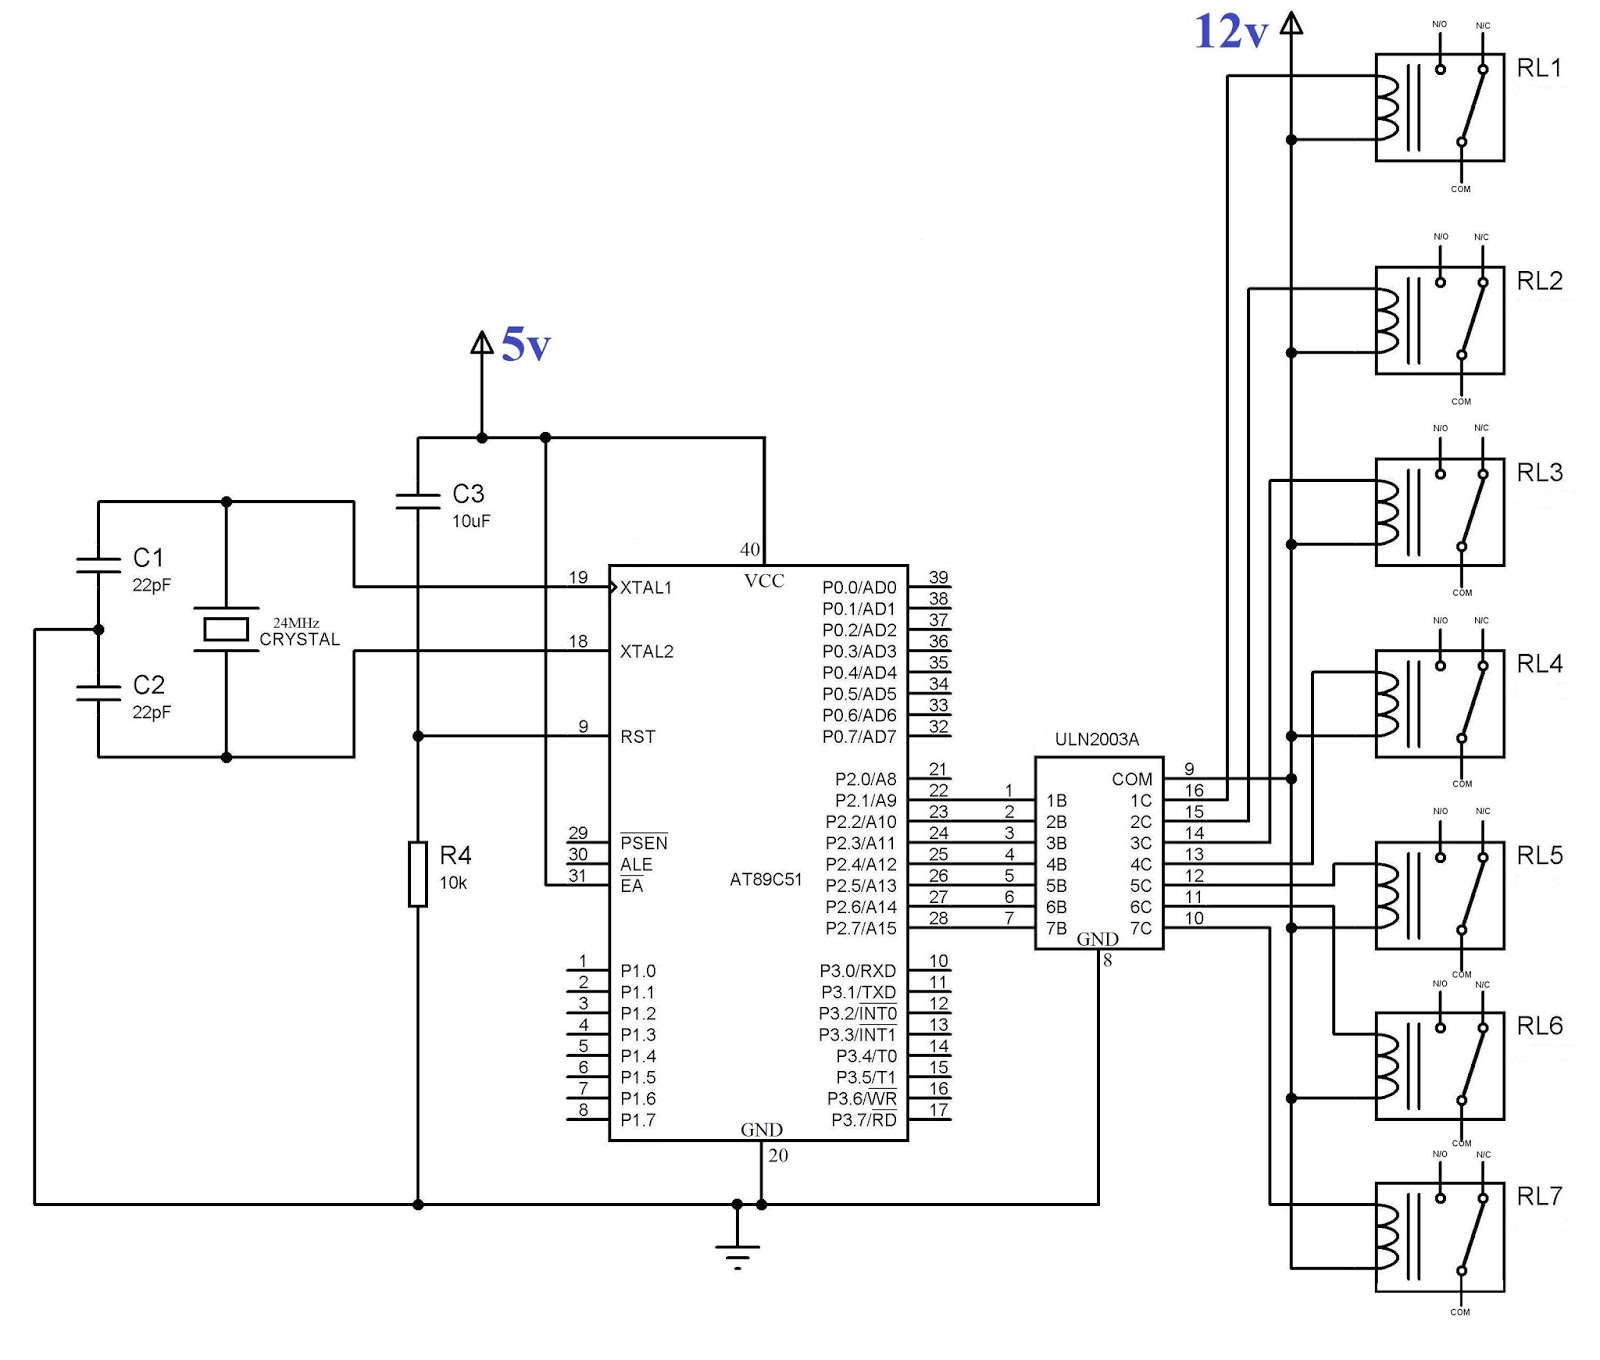 8051 microcontroller uln 2003 relay driver circuit for 8051 circuit diagram of uln2003 interfacing with 8051 microcontroller ccuart Images